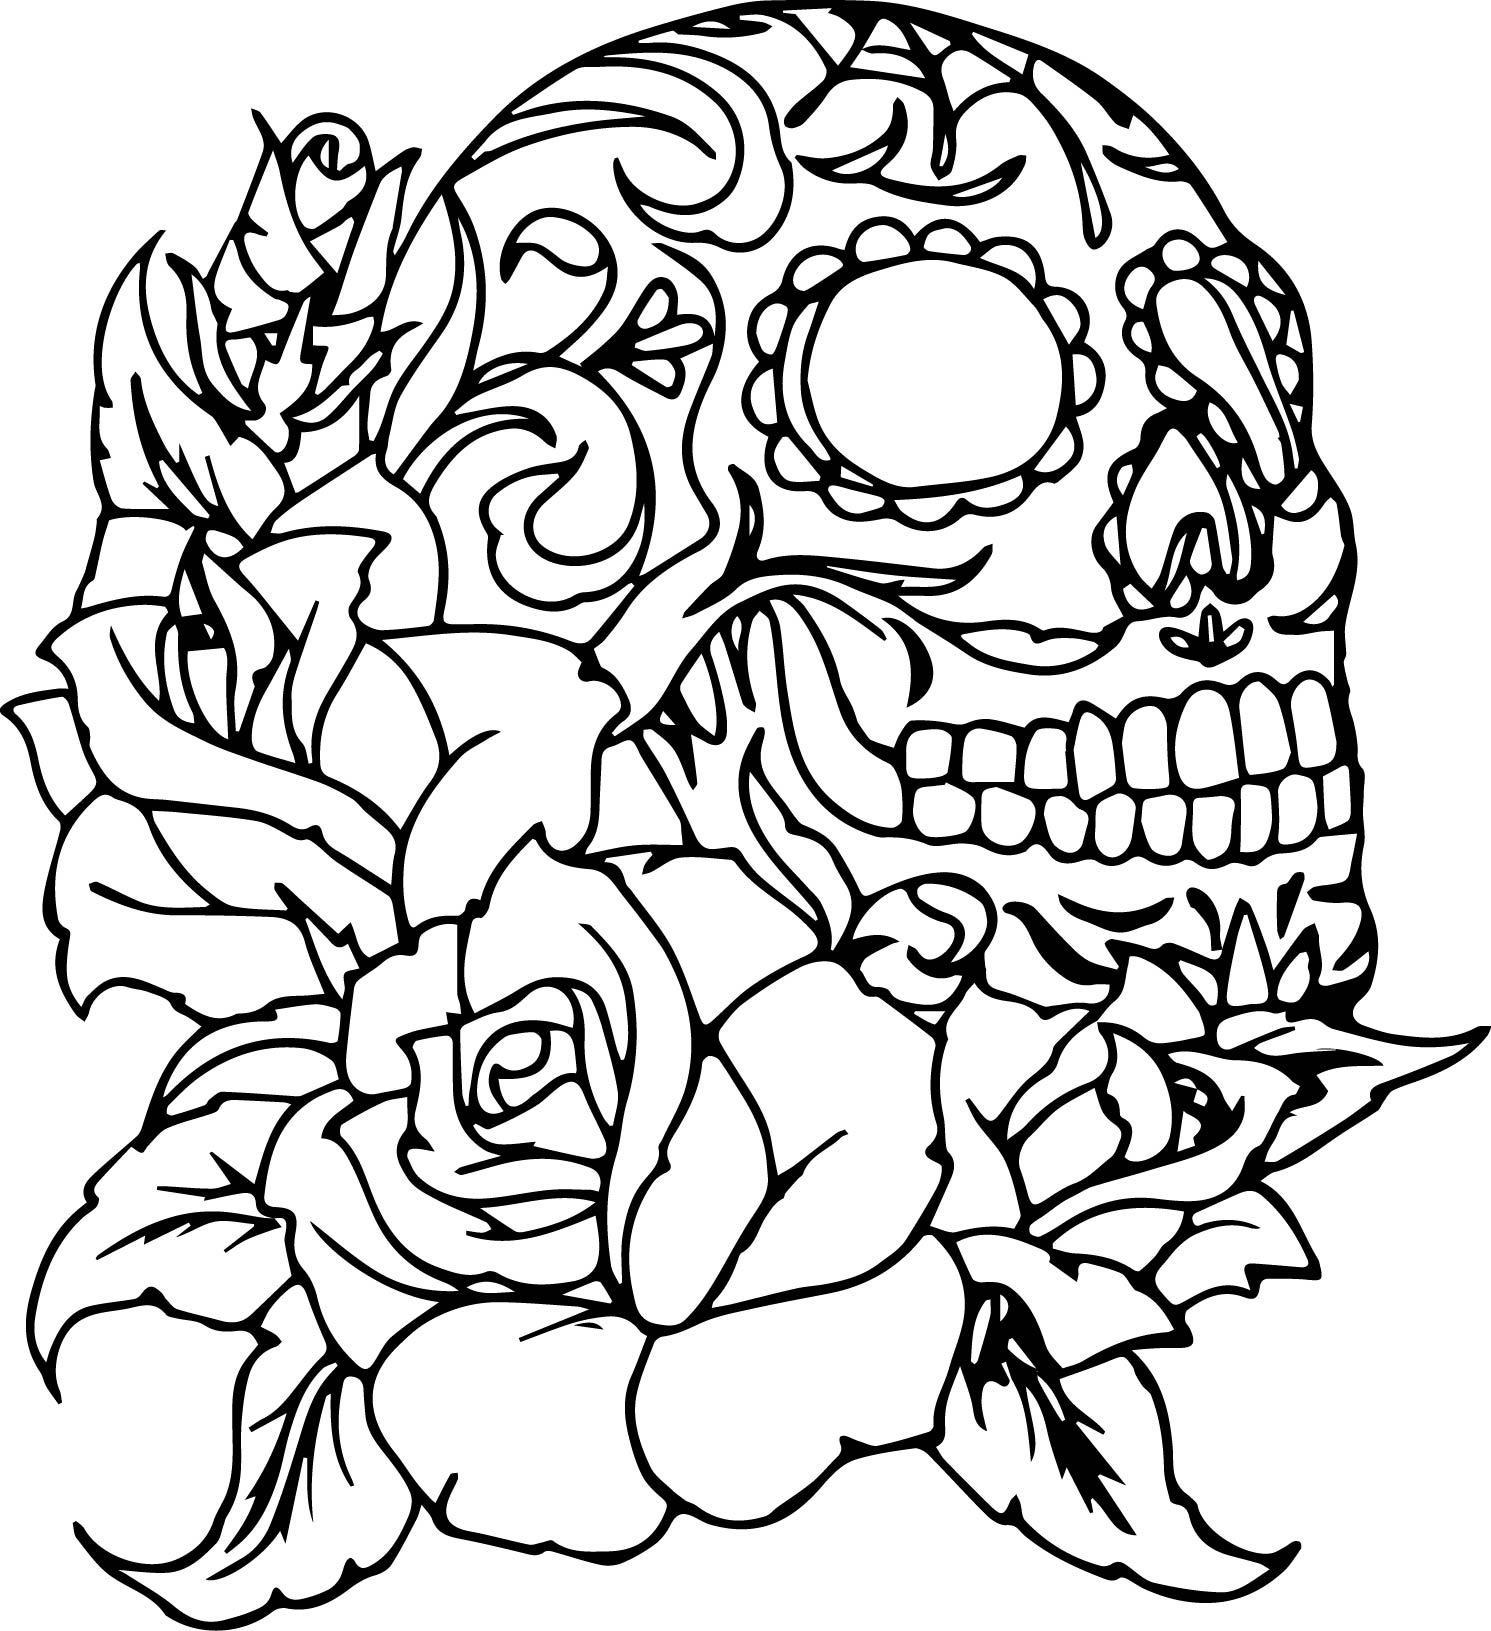 coloring sheet guns and roses coloring pages skull and roses coloring pages at getdrawings free download coloring roses guns and sheet coloring pages